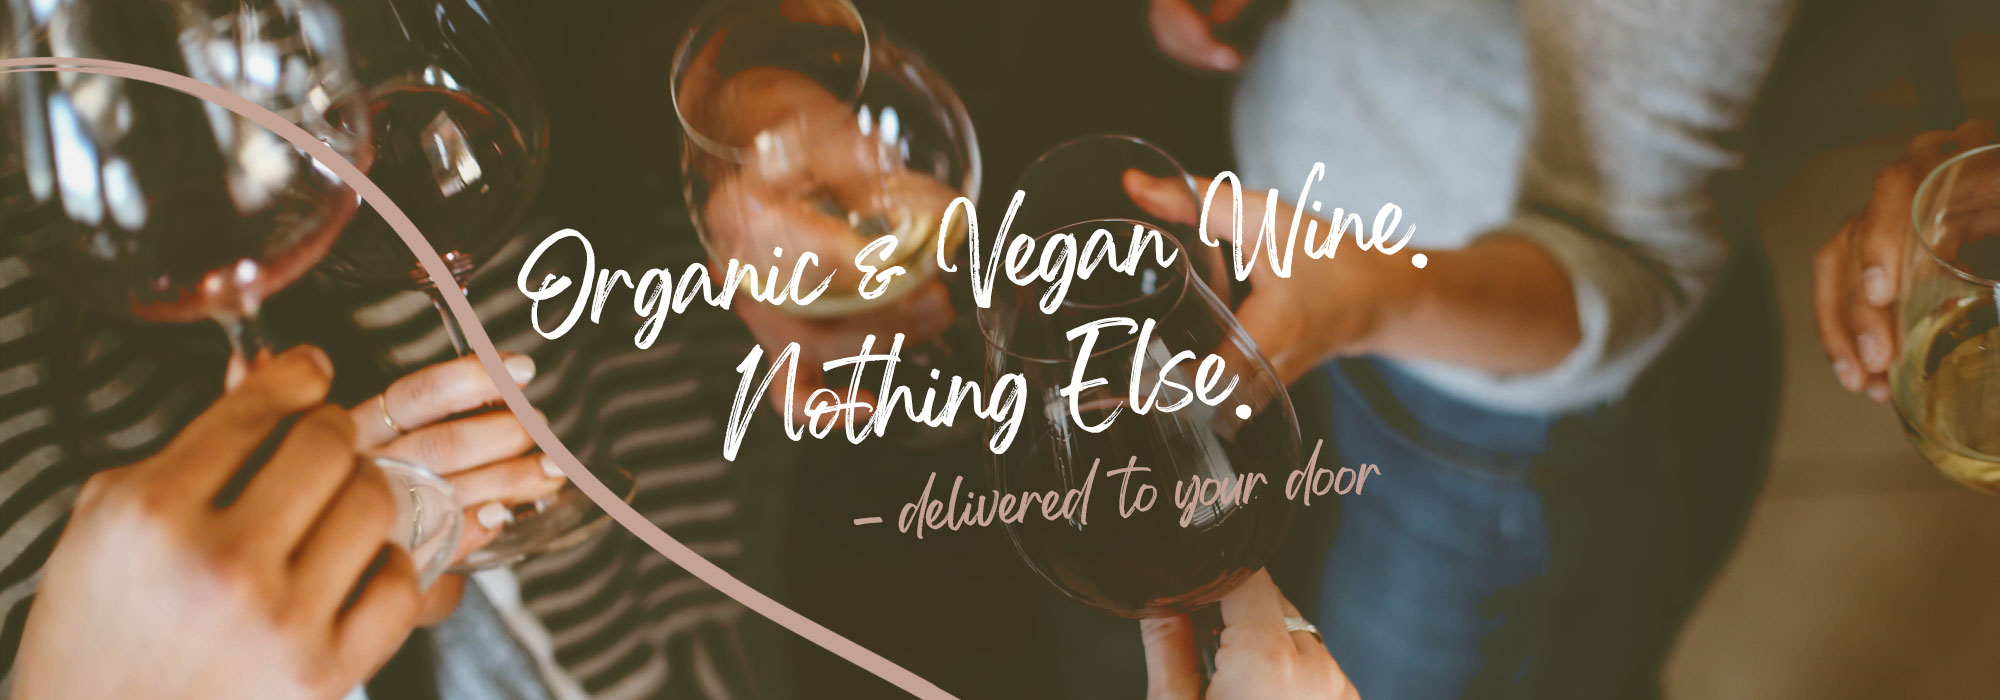 Organic-and-Vegan-Wine